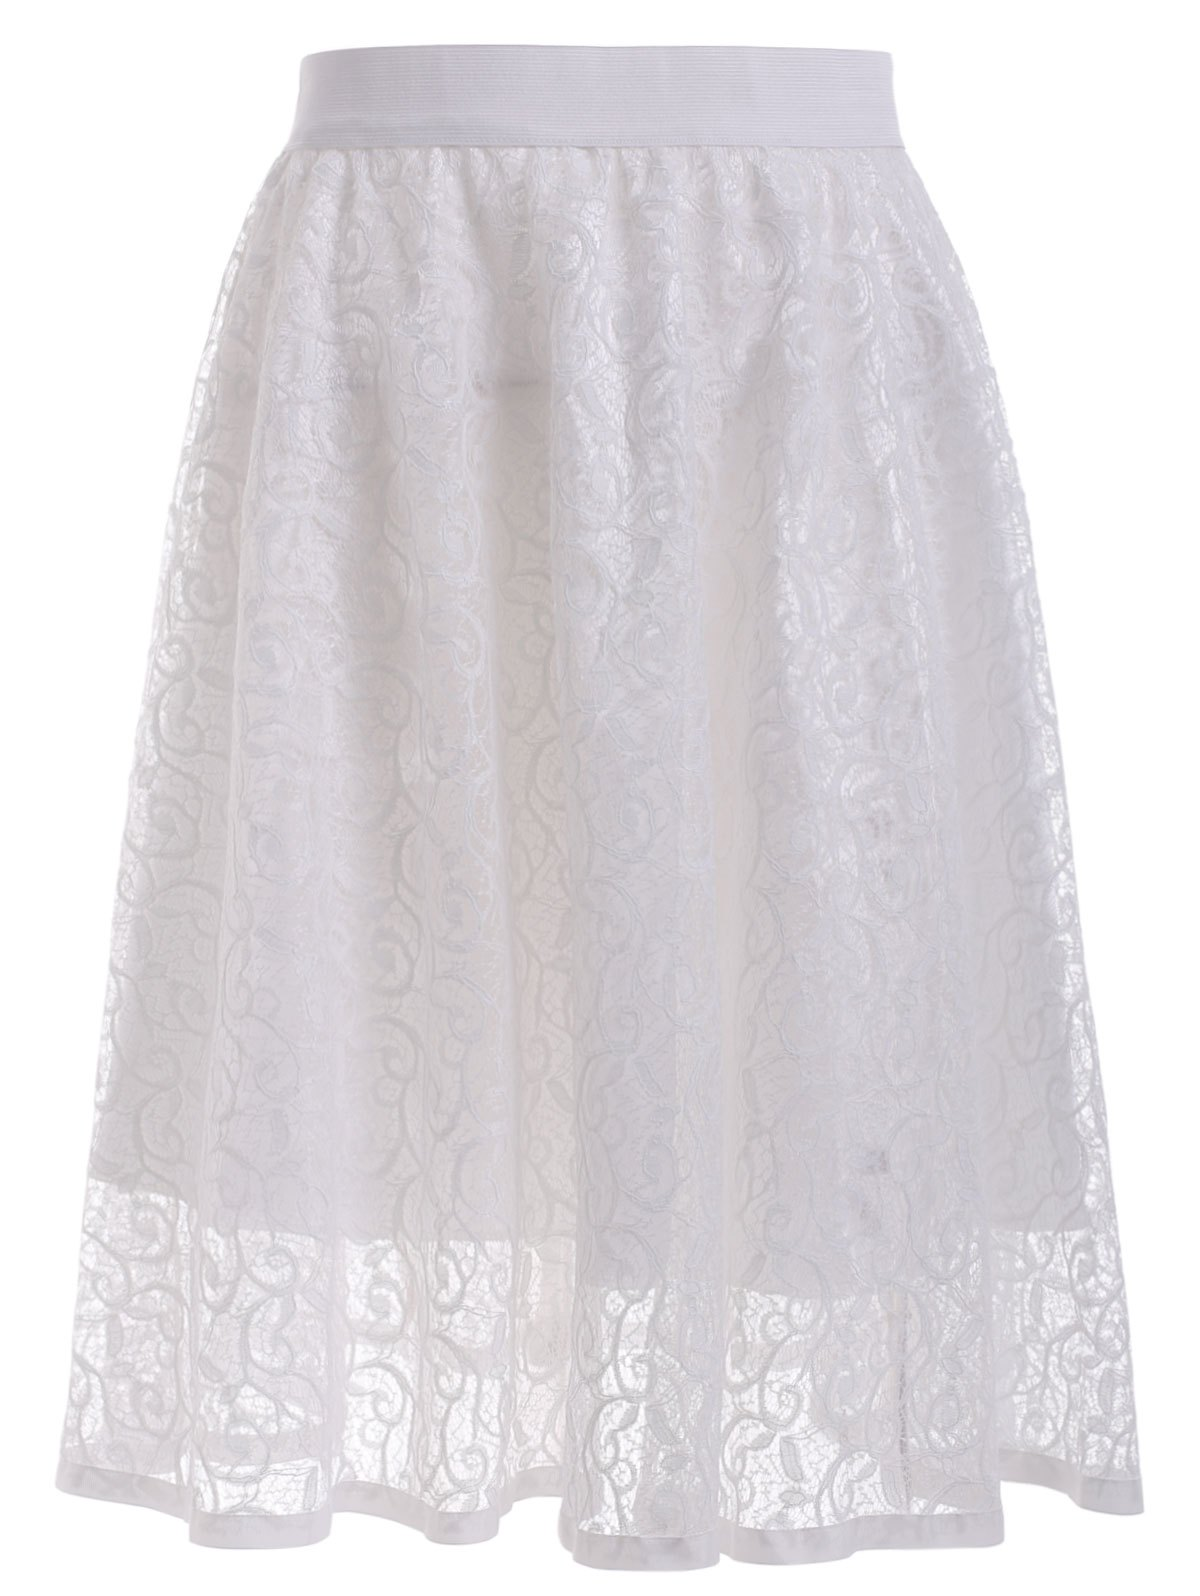 See-Through Lace A Line Skirt - WHITE ONE SIZE